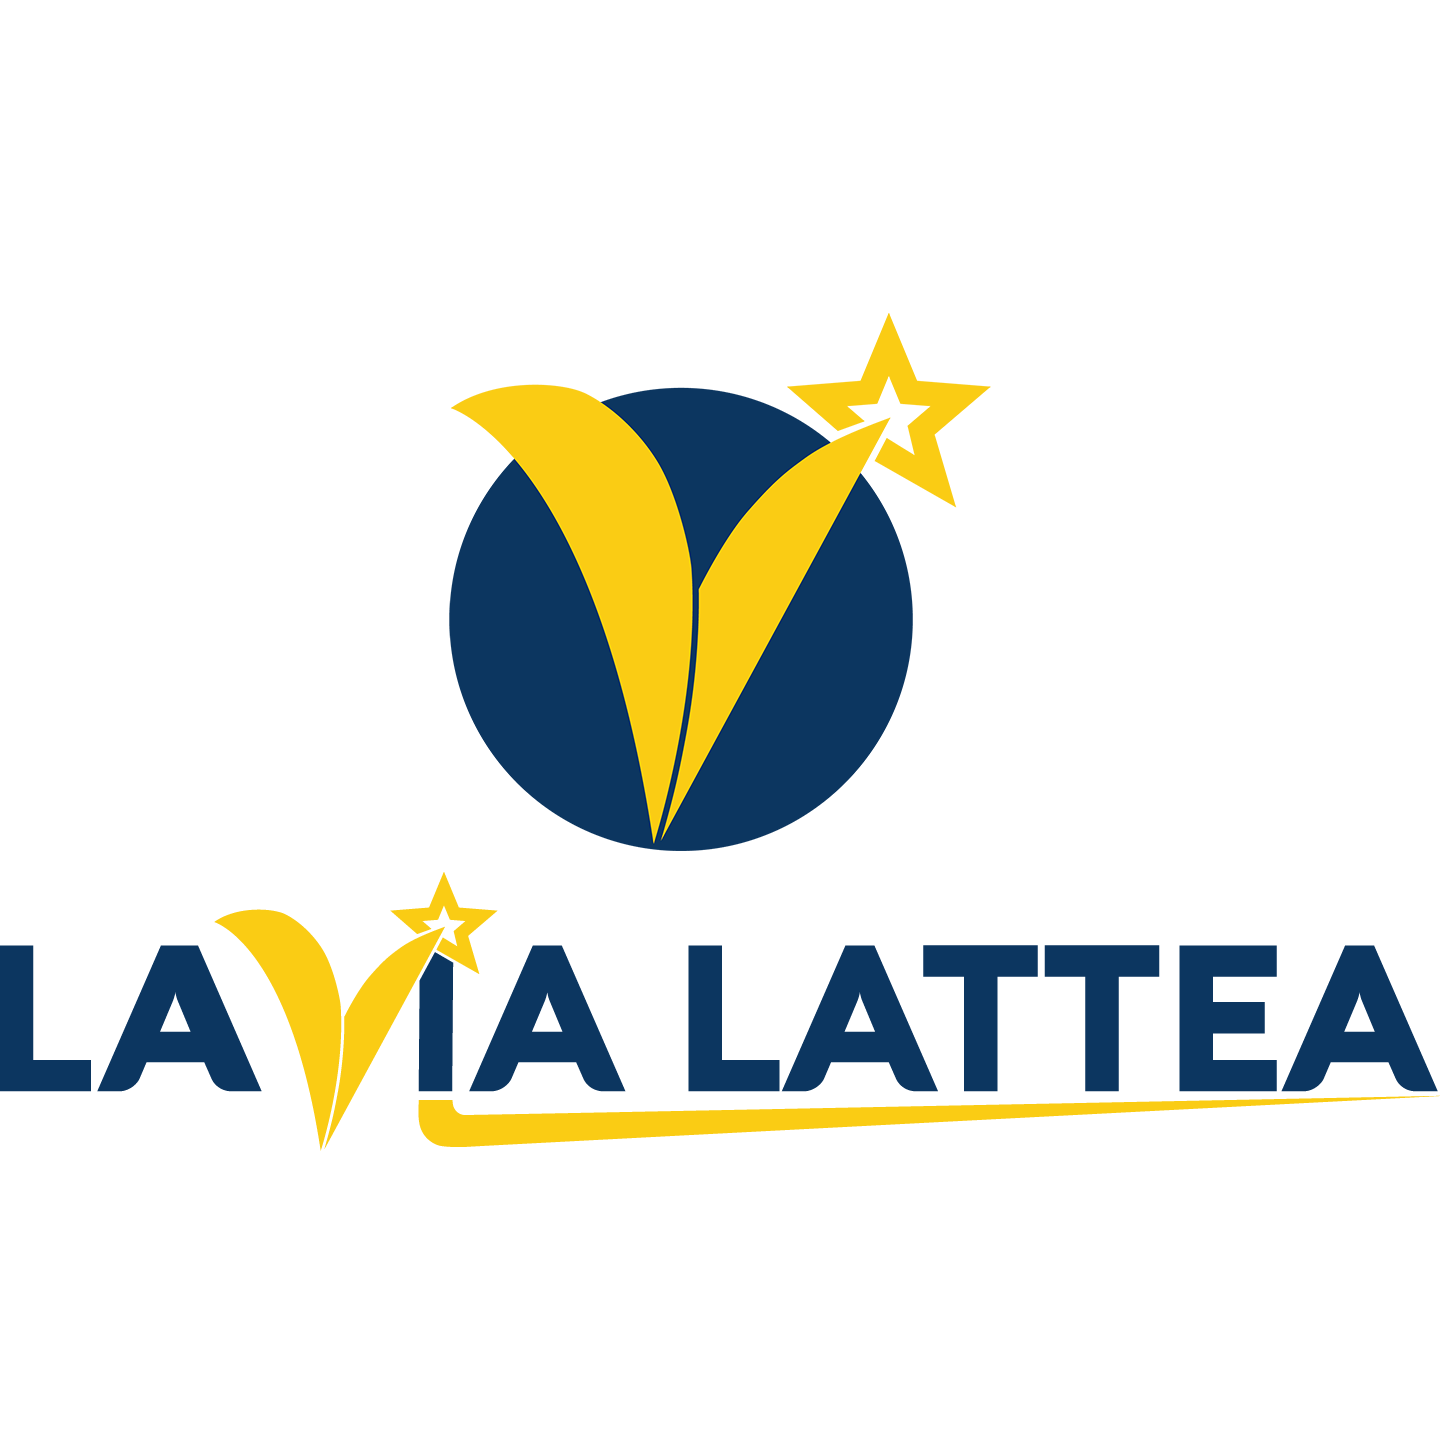 Lavialattea.it